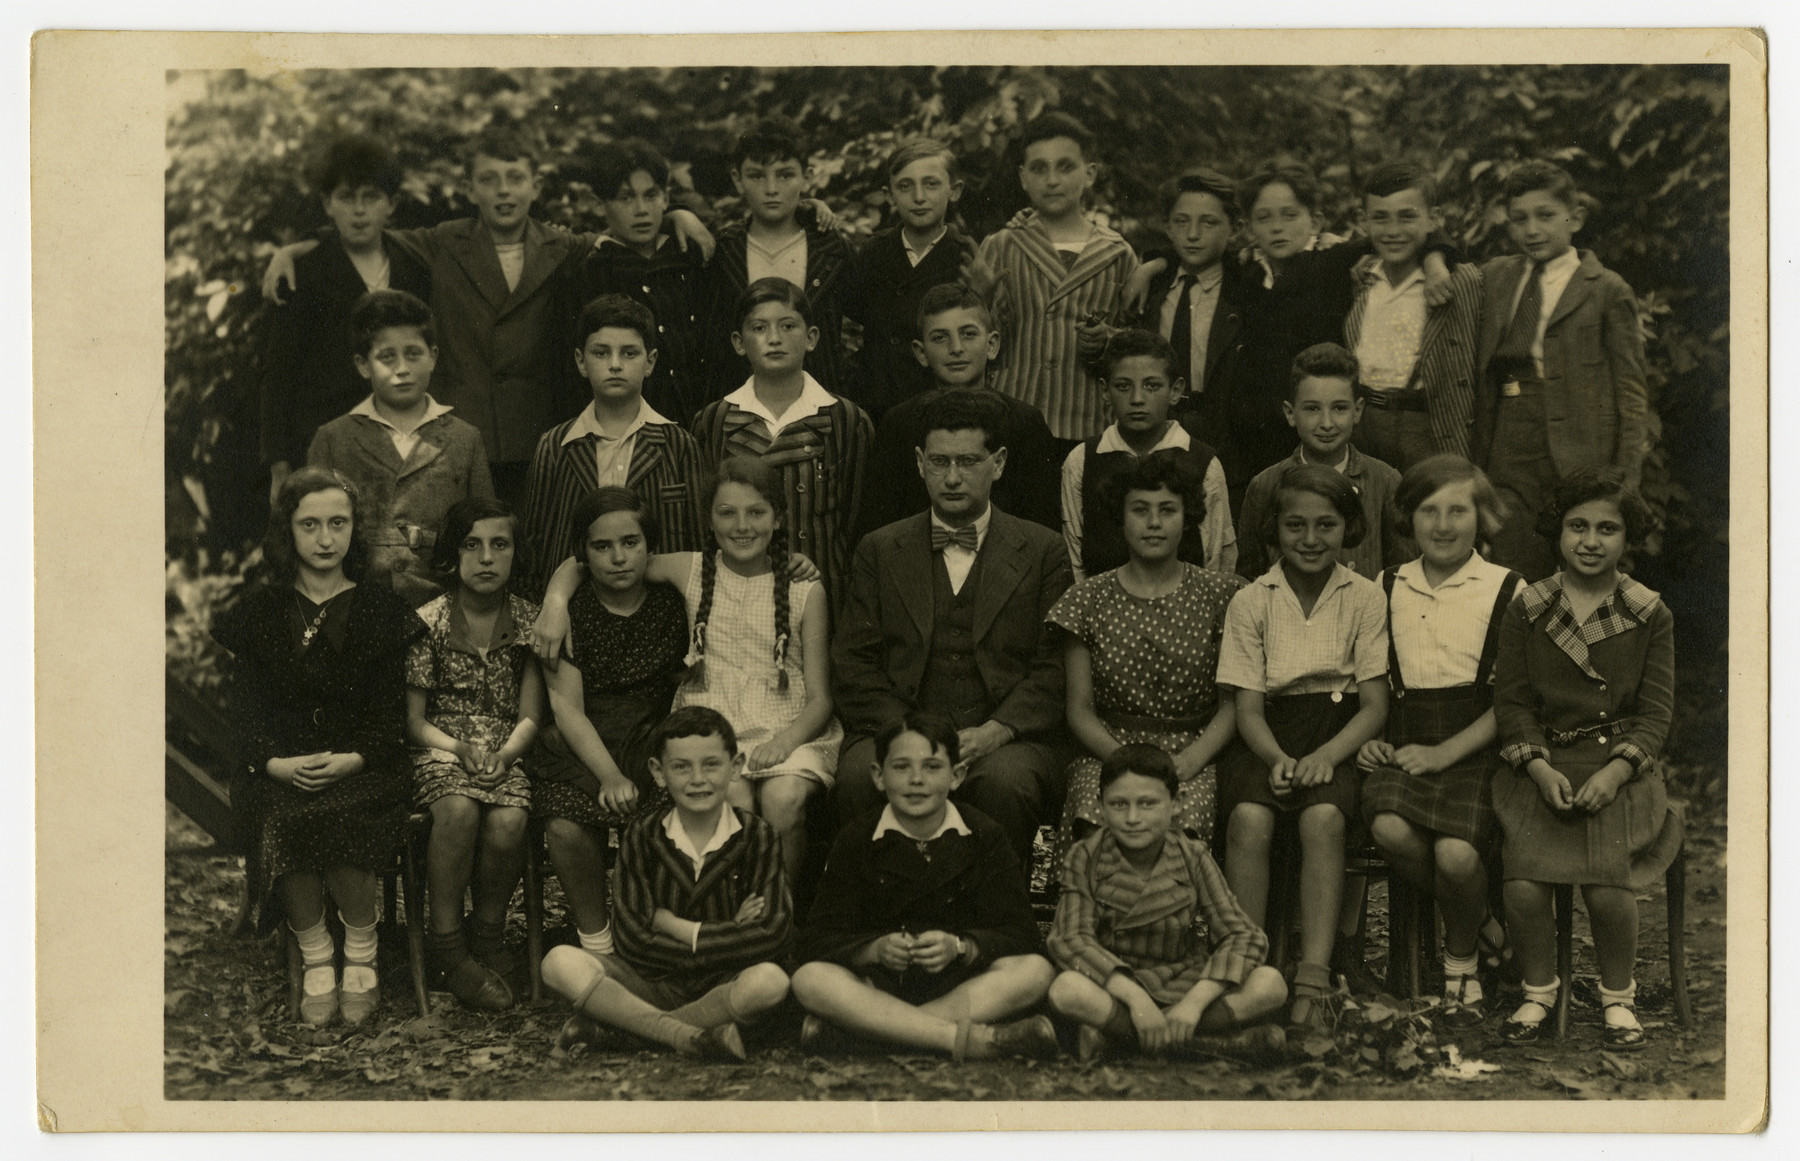 Class portrait of the Juedische Gemeinde Schule in Brno, Czechoslovakia.     Sali Berl, seated far left, was among the few survivors of her class.